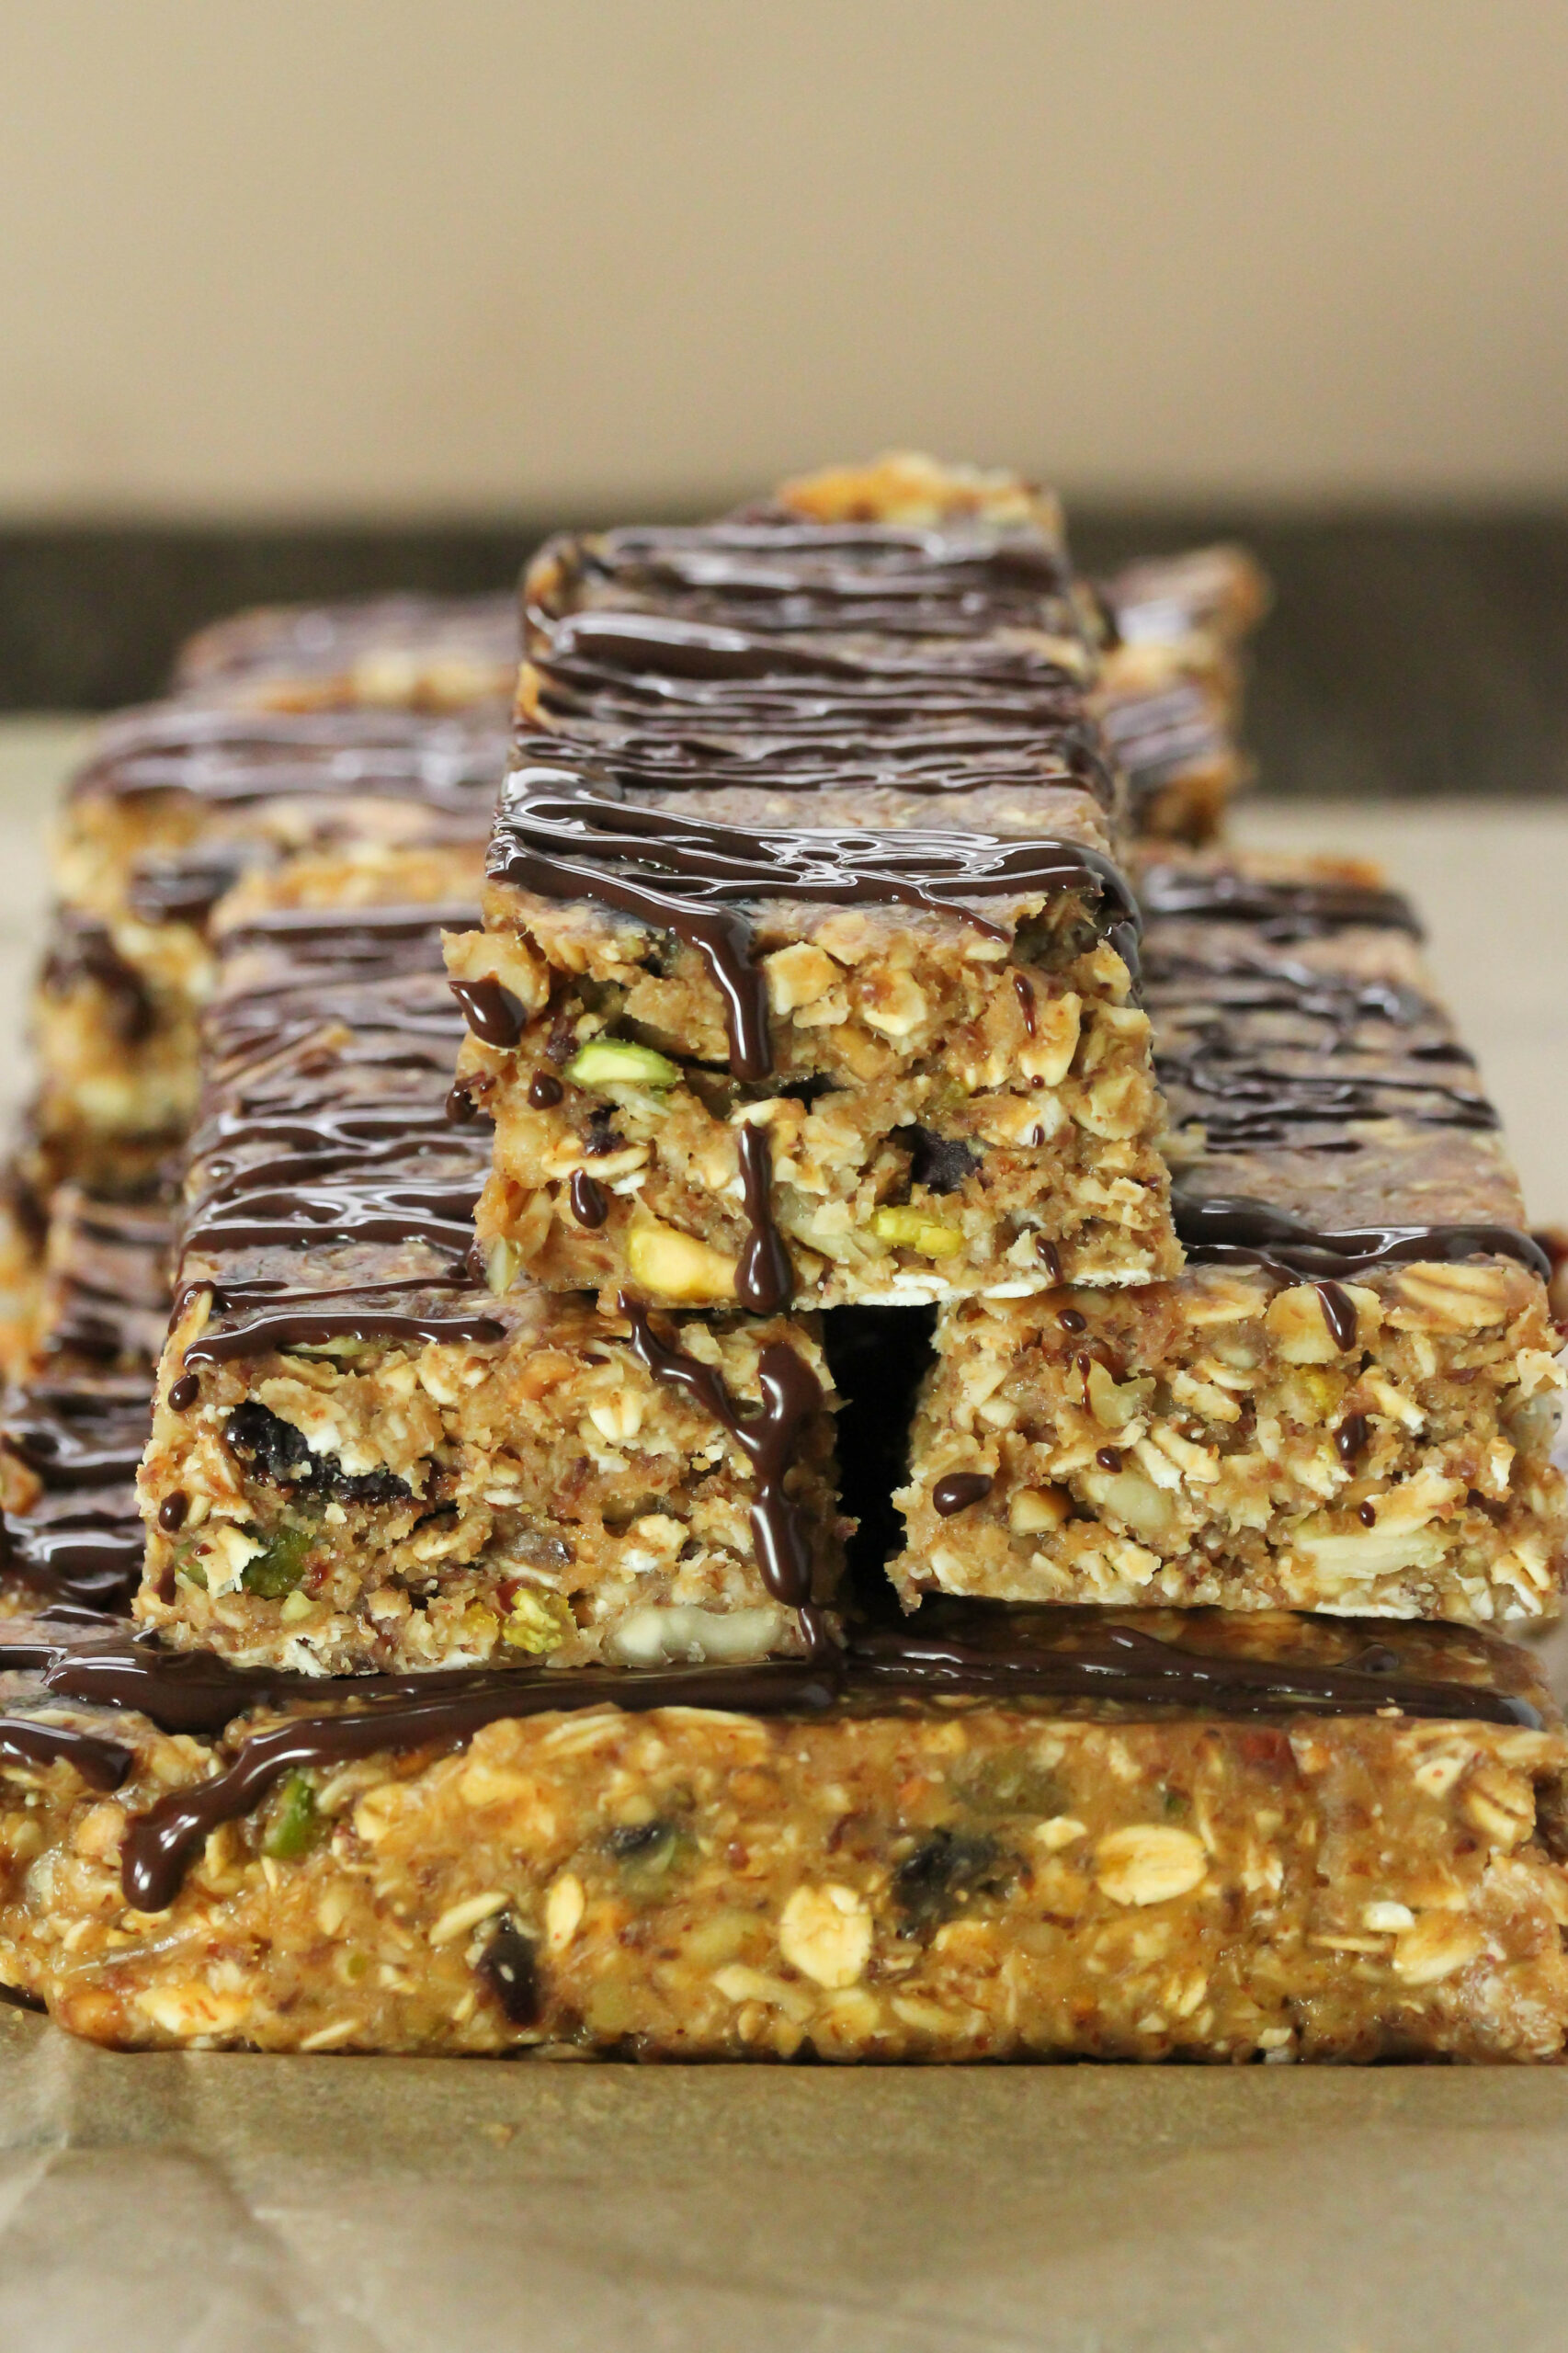 No bake breakfast bars - Gluten free, vegan - recipes breakfast bars healthy